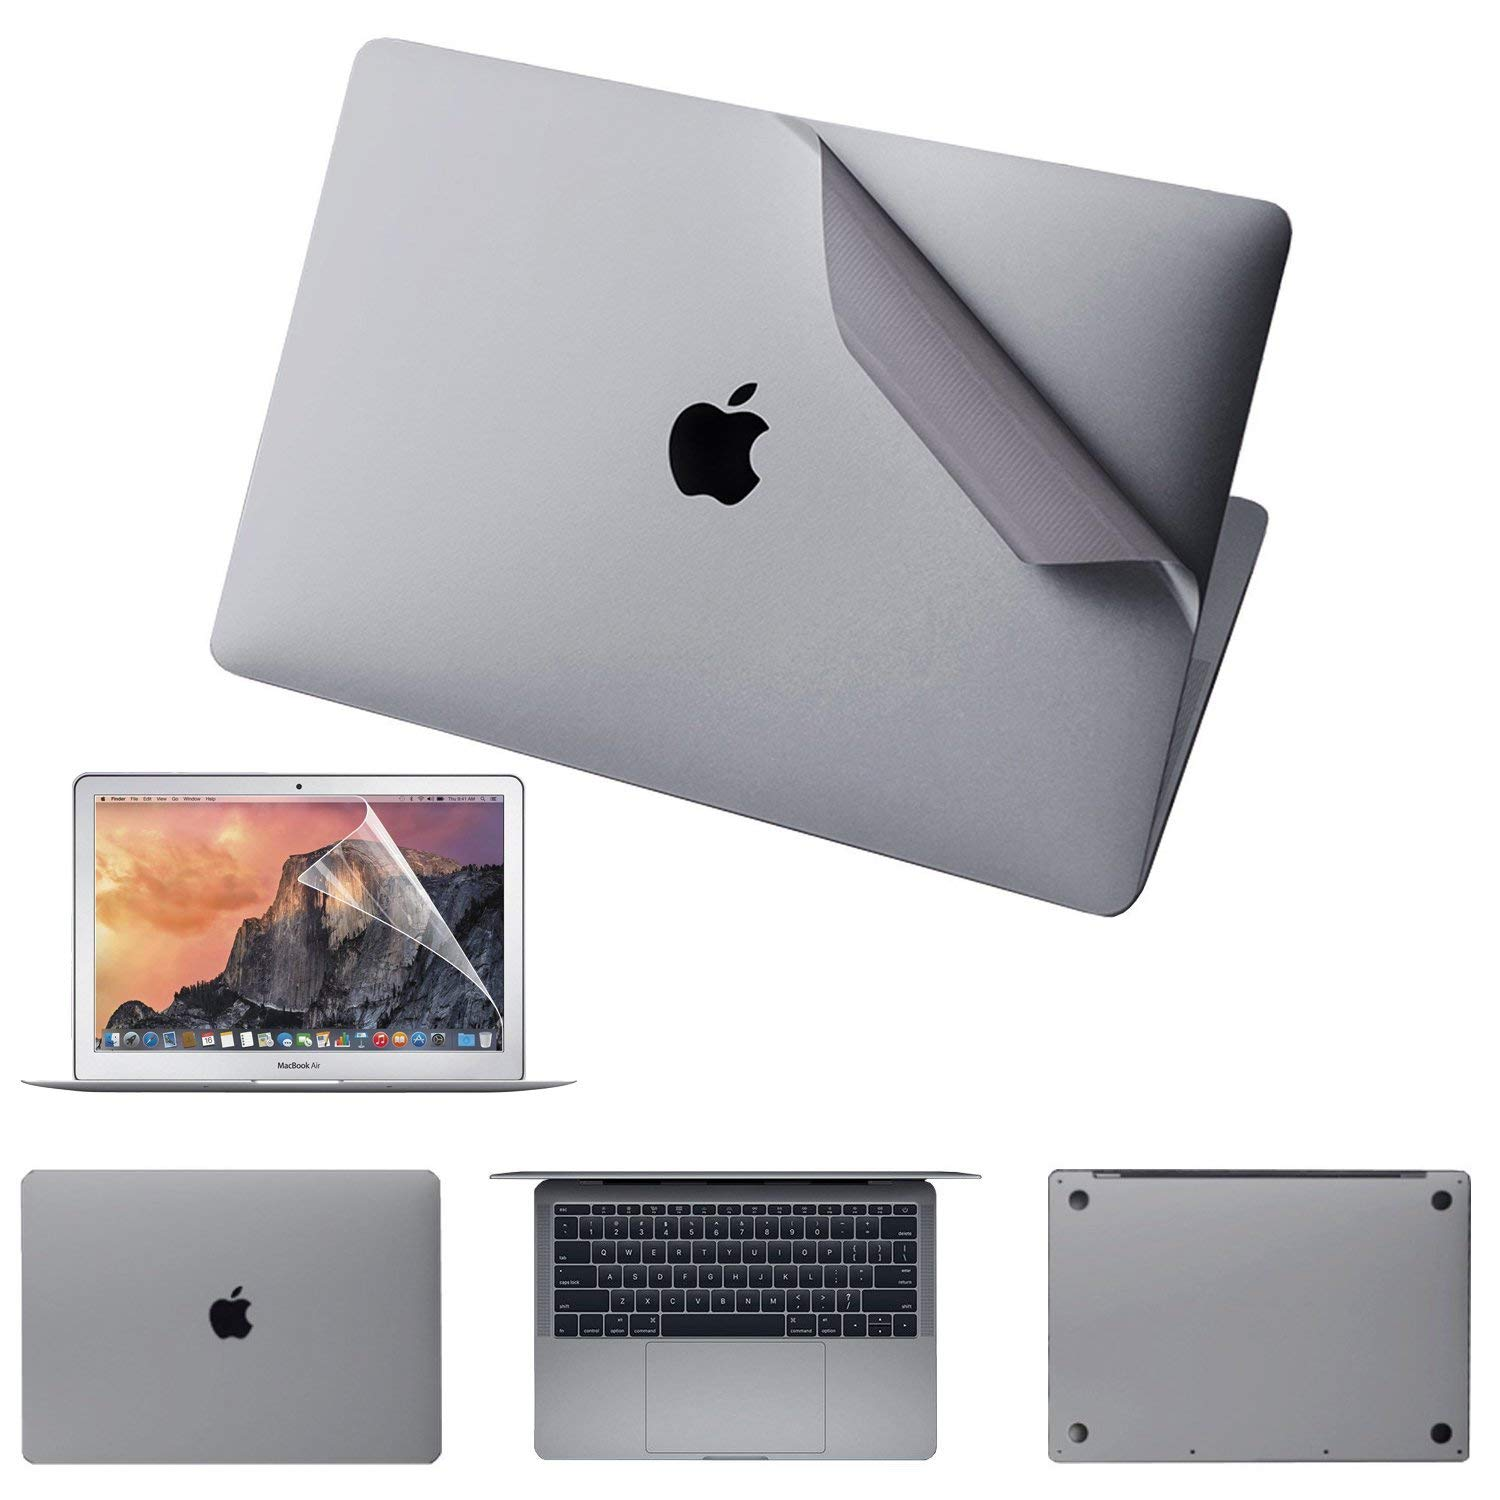 JRCMAX 5-in-1 Full Body Skin Sticker for MacBook Pro 13 Inch Without Touchbar A1708, 3M Full-Cover Protector Vinyl Decal Skin [Top + Bottom + Touchpad + Palm Rest) Silver